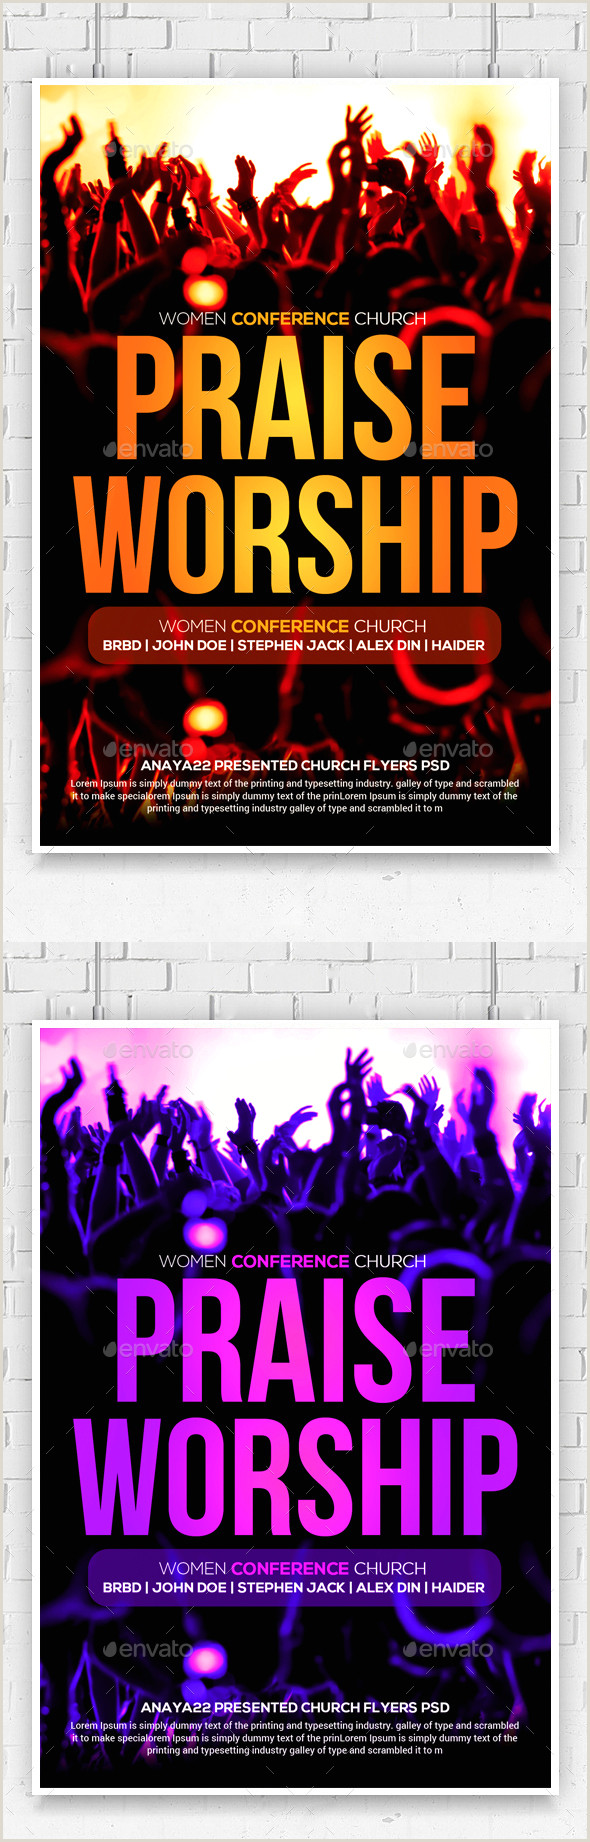 Evangelism Graphics Designs & Templates from GraphicRiver